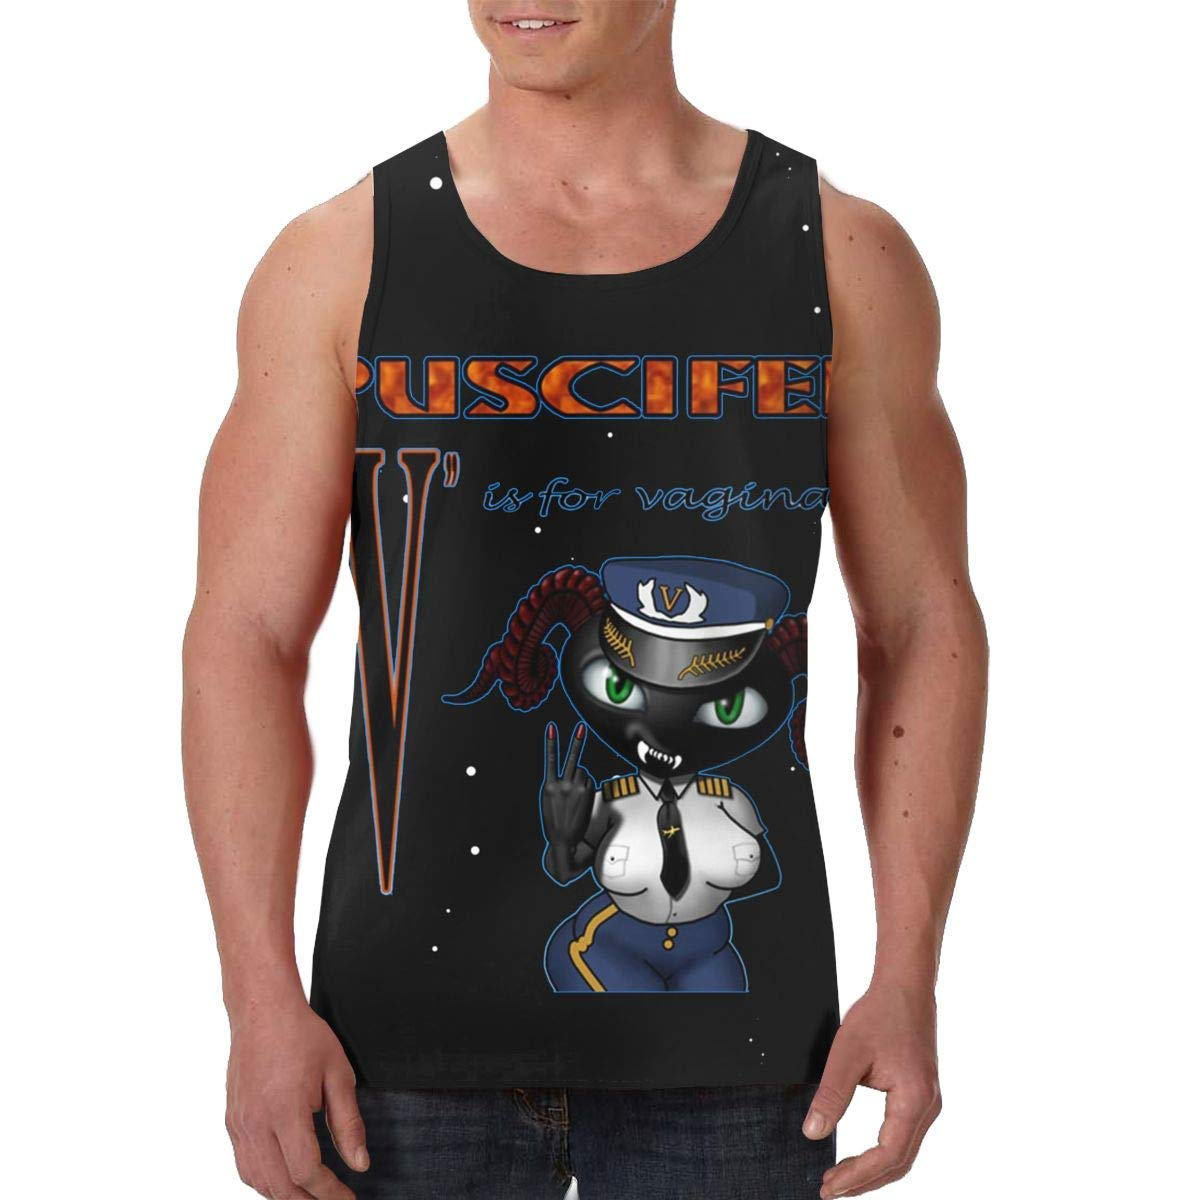 TCJX Puscifer V is Vagina Mens Classic Muscle Tank Top Tee